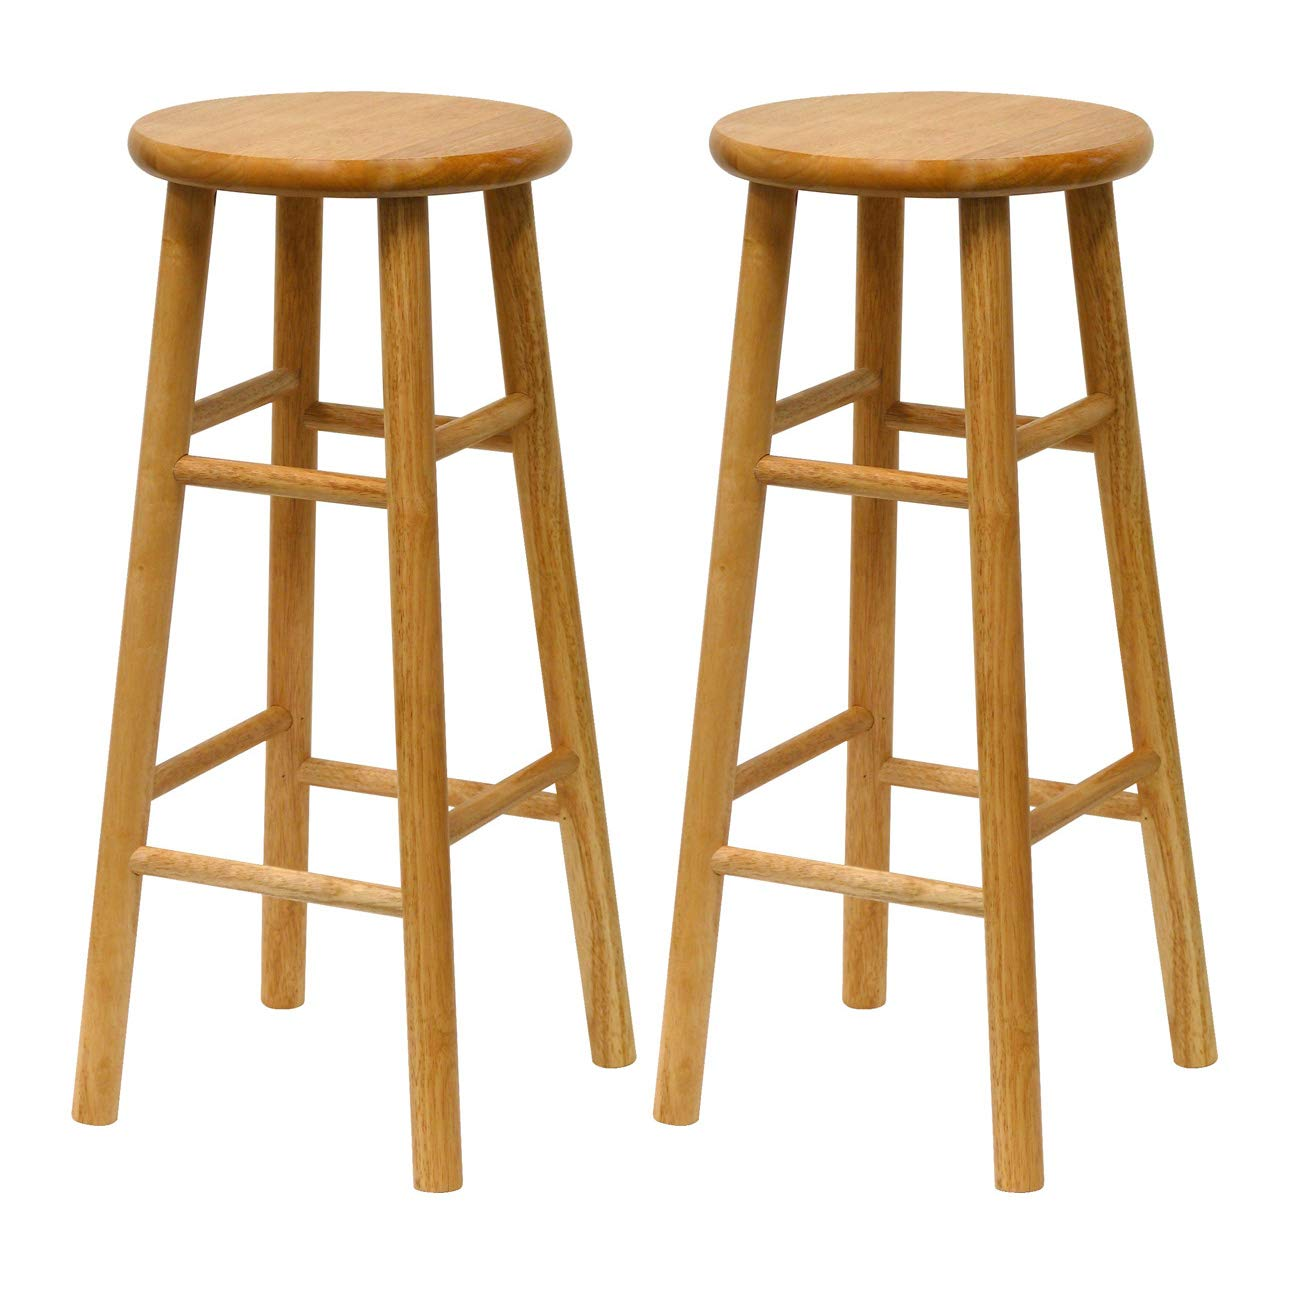 Winsome Wood 30-Inch Classic Style Bar Stools Set of 2, White Include Free Laundry Mesh Bag